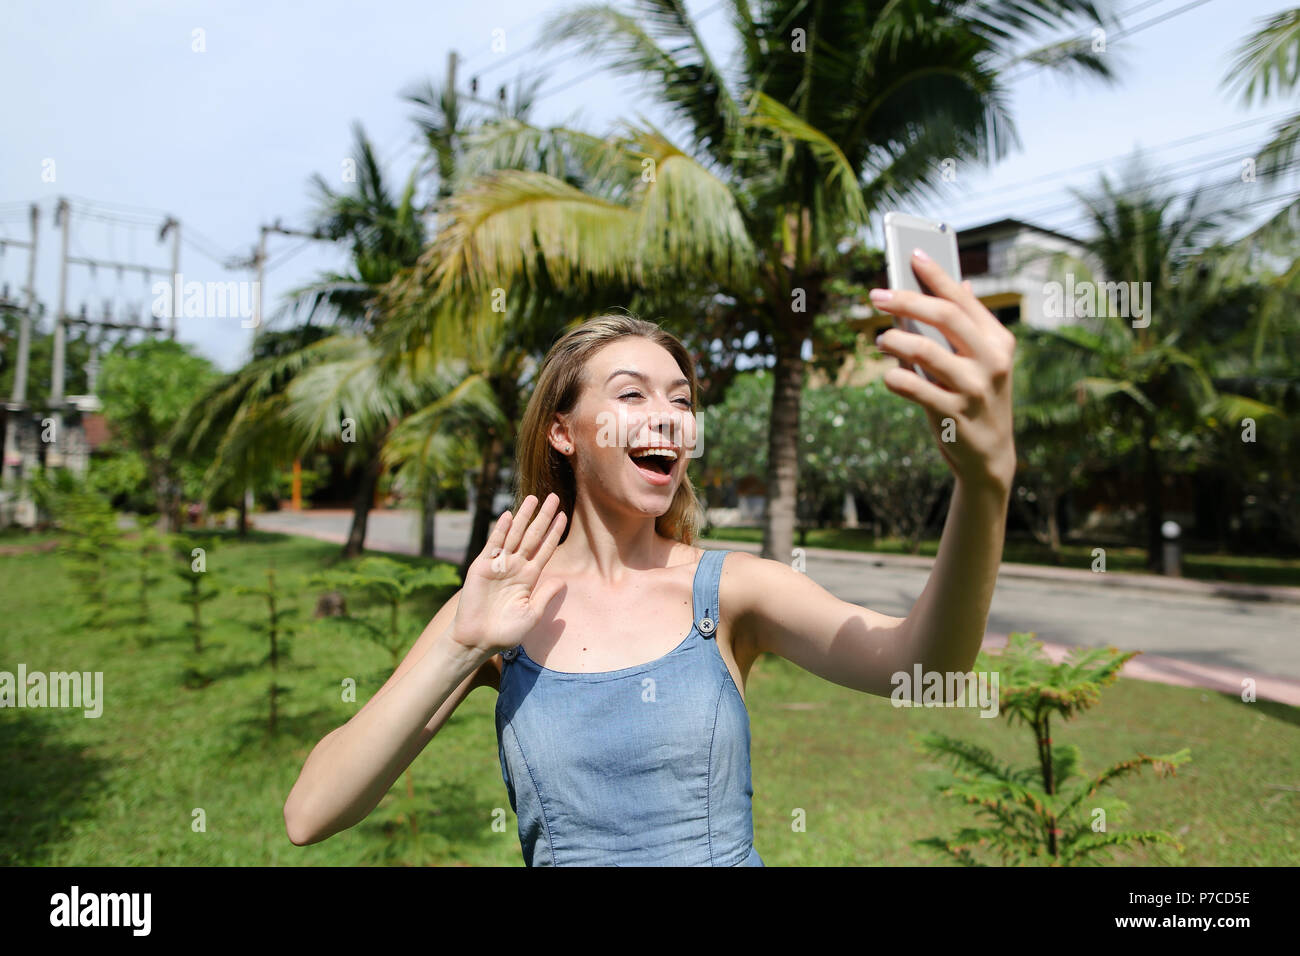 Young girl making video call by smartphone near palm trees in background. - Stock Image